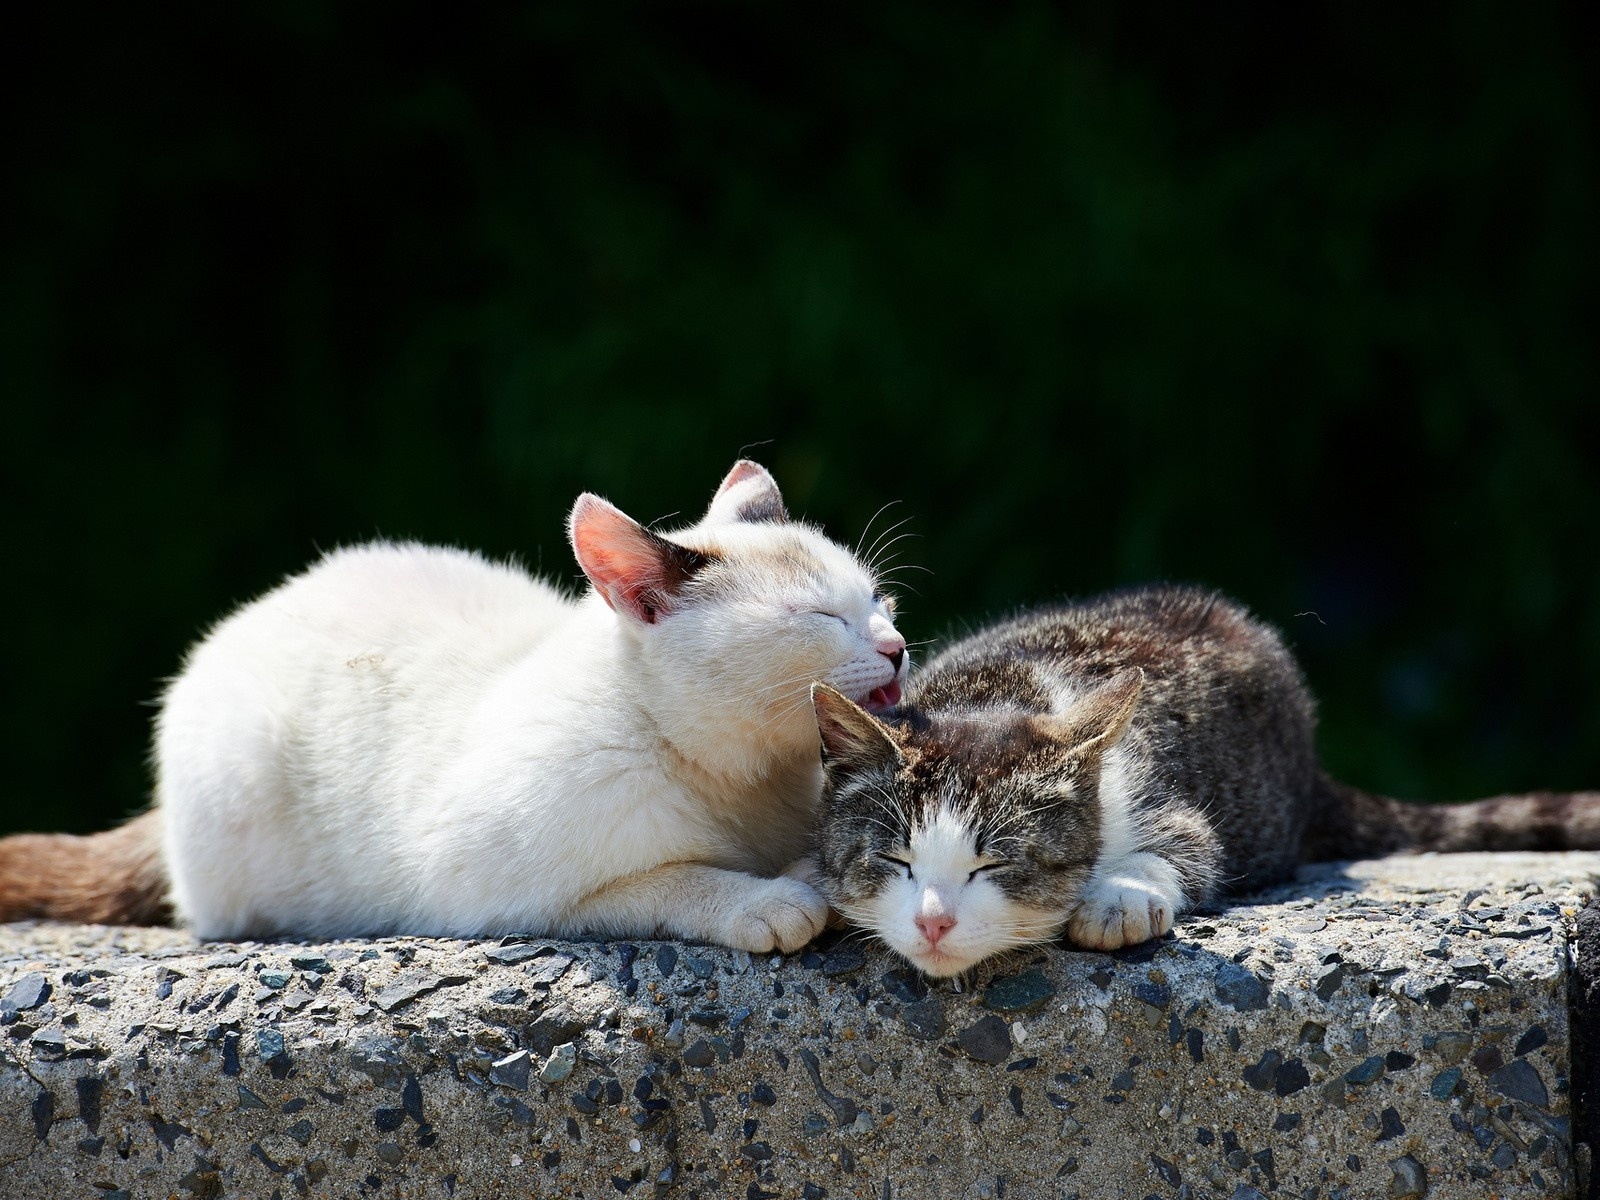 click to free download the wallpaper--Cute Animals Pic, Cats Sleeping, Close to Each Other, Great Lovers 1600X1200 free wallpaper download